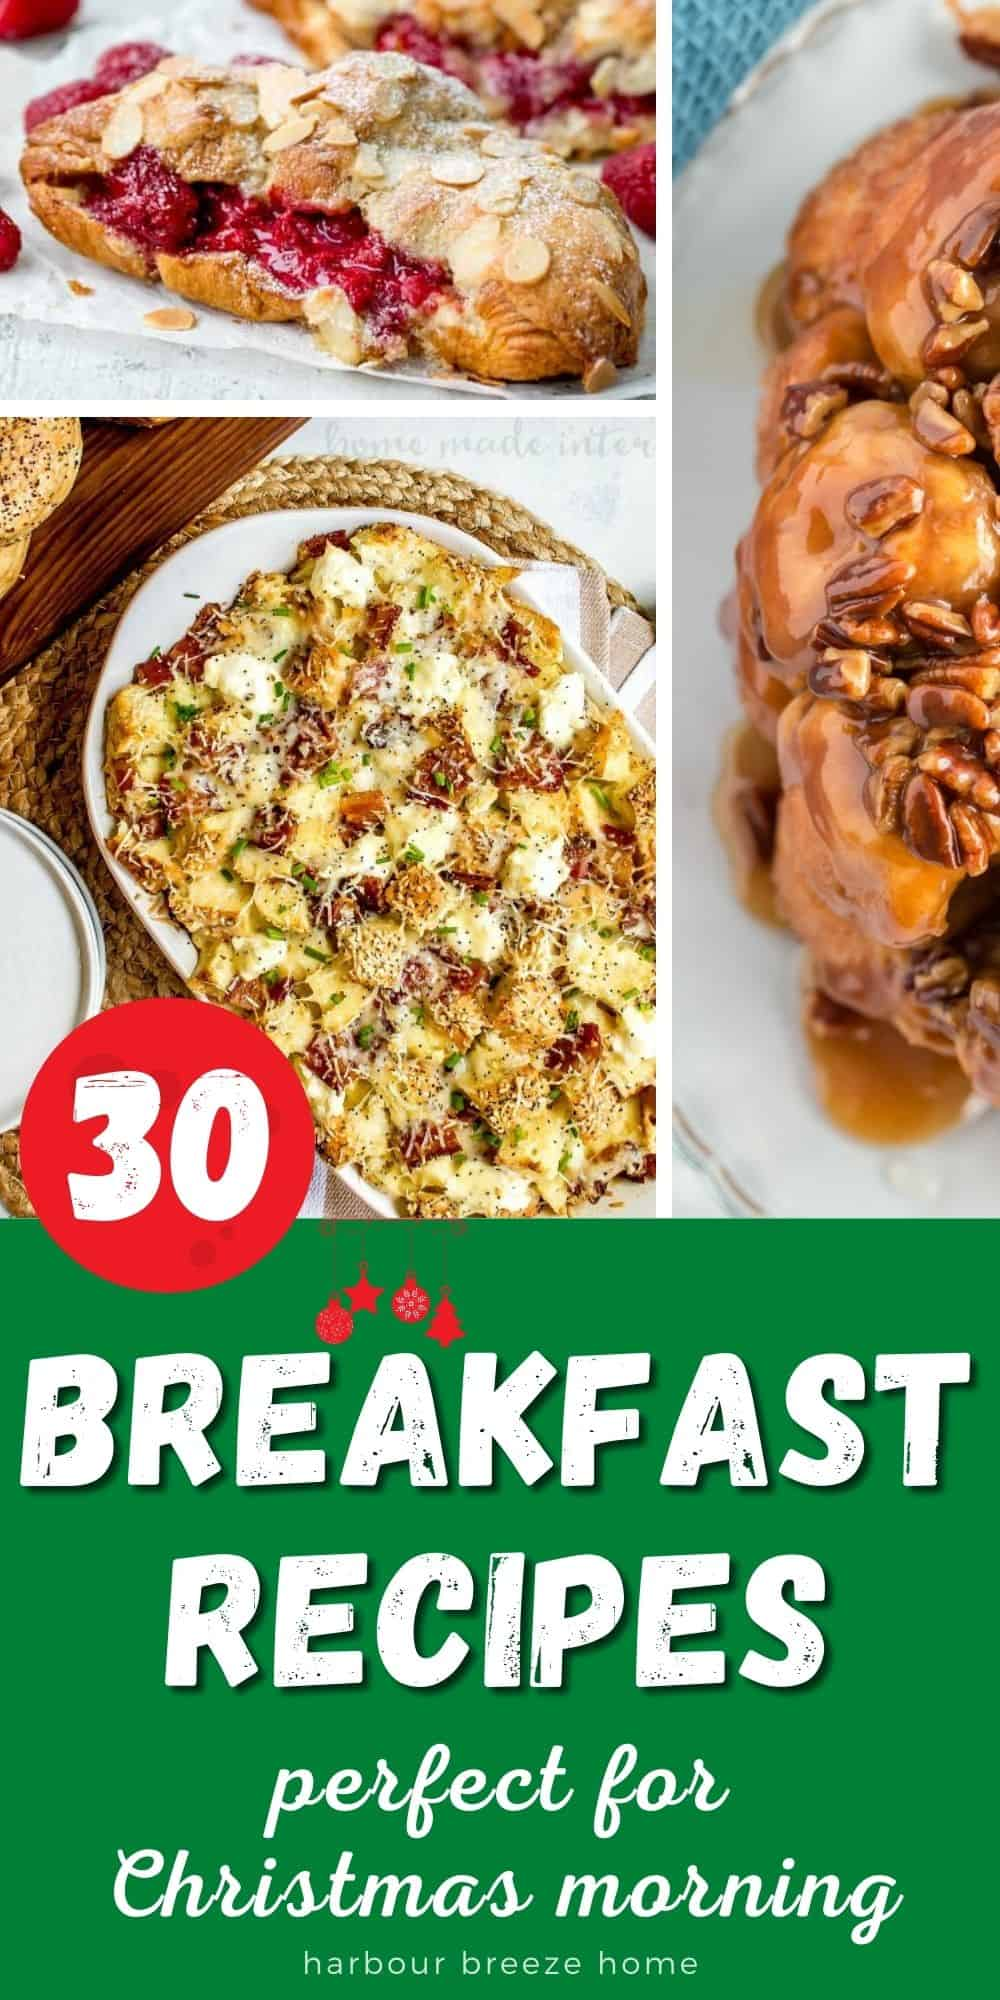 30 Breakfast Recipes - Casseroles, Sweet Breads, & muffins - perfect for Christmas morning breakfast